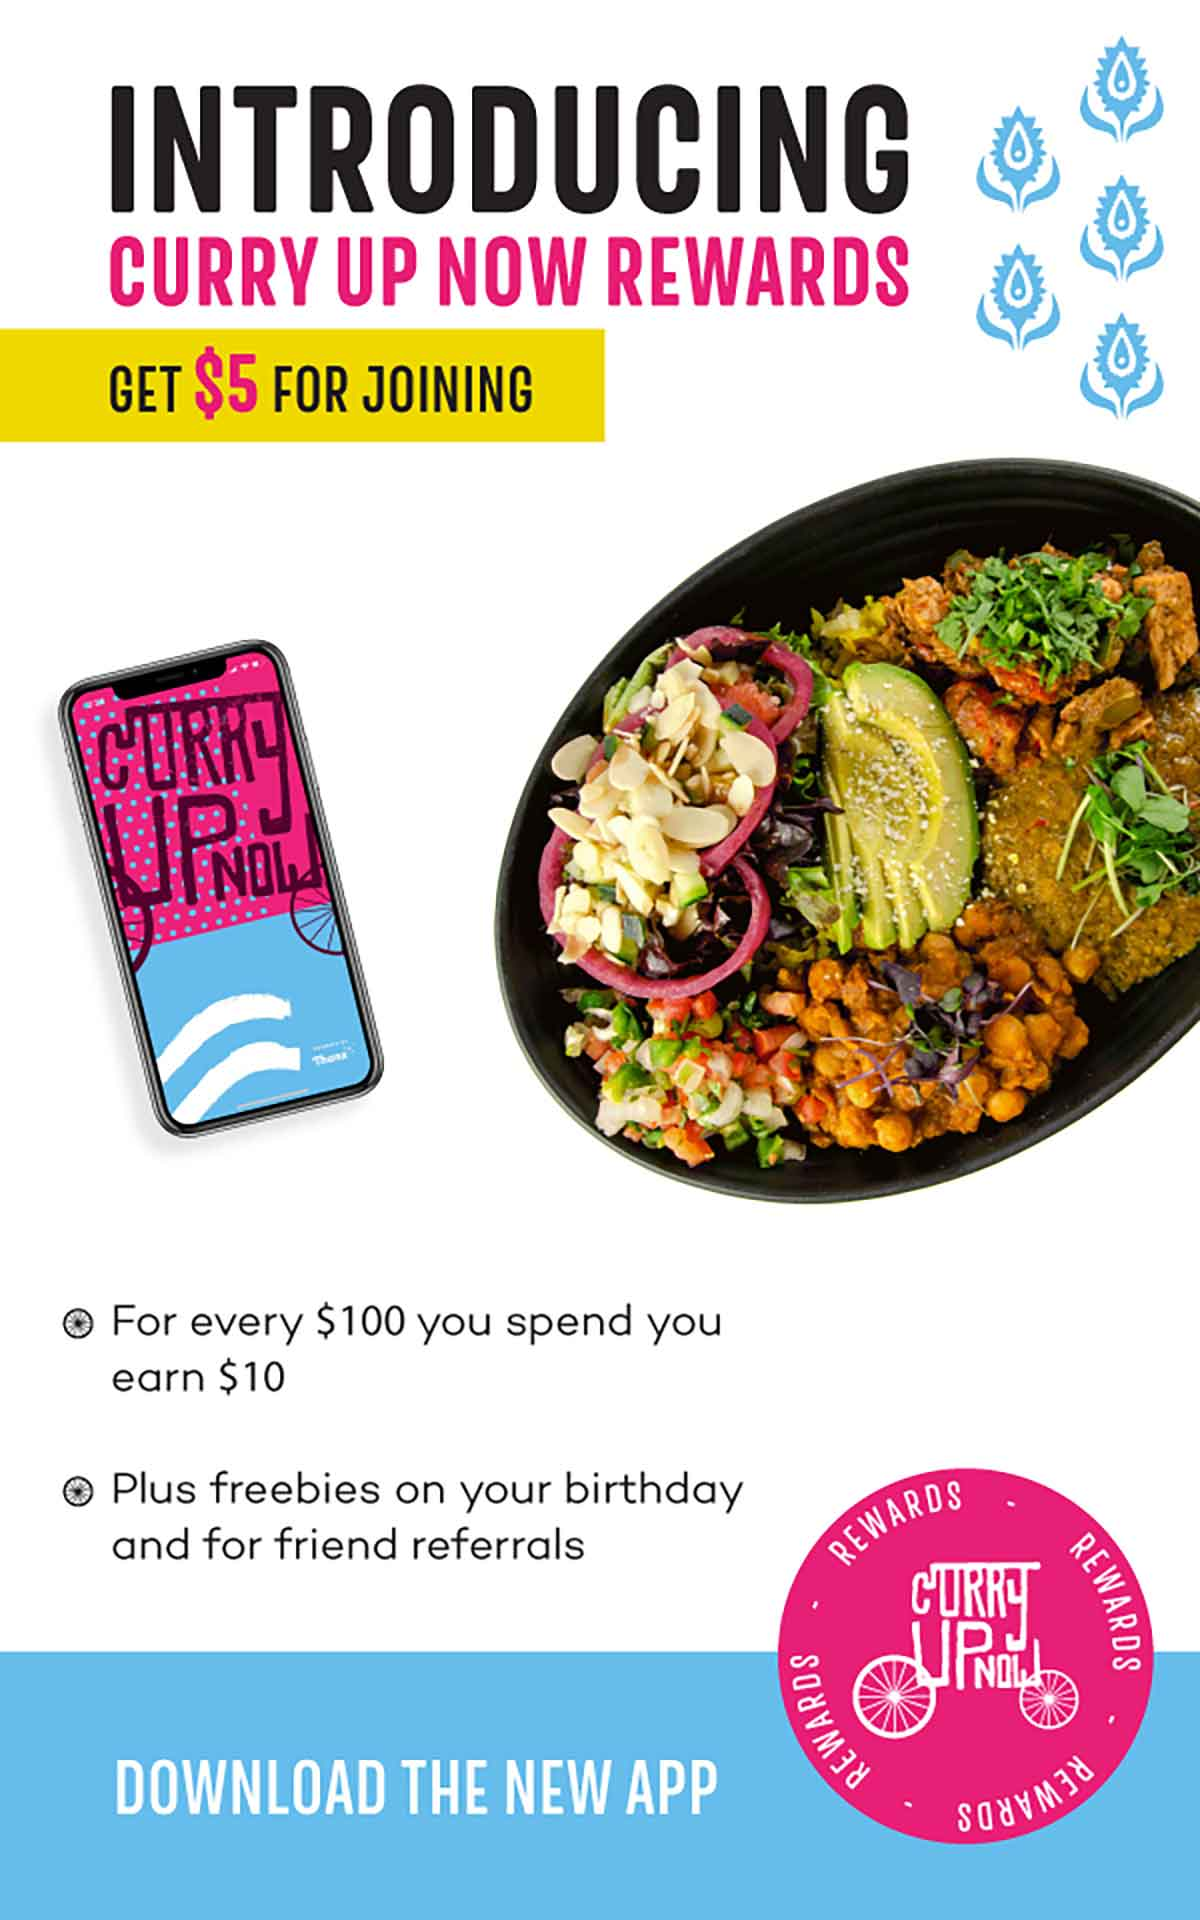 Curry Up Now: Email - New App